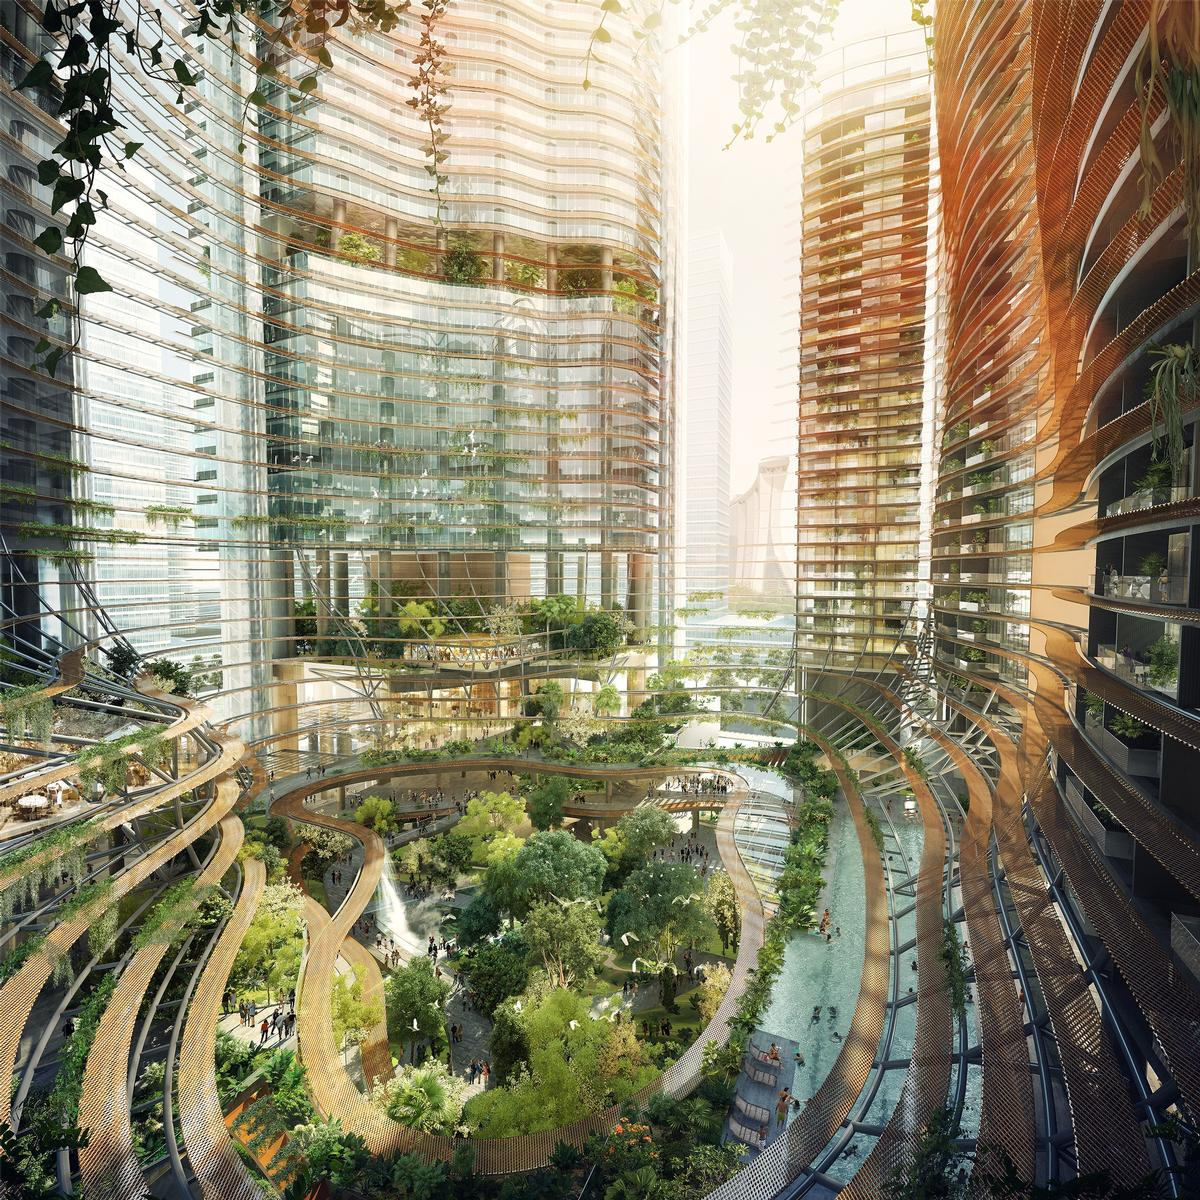 Shrubs, trees, and flowers will appear on every floor of the four towers that form Marina One / Ingenhoven Architects